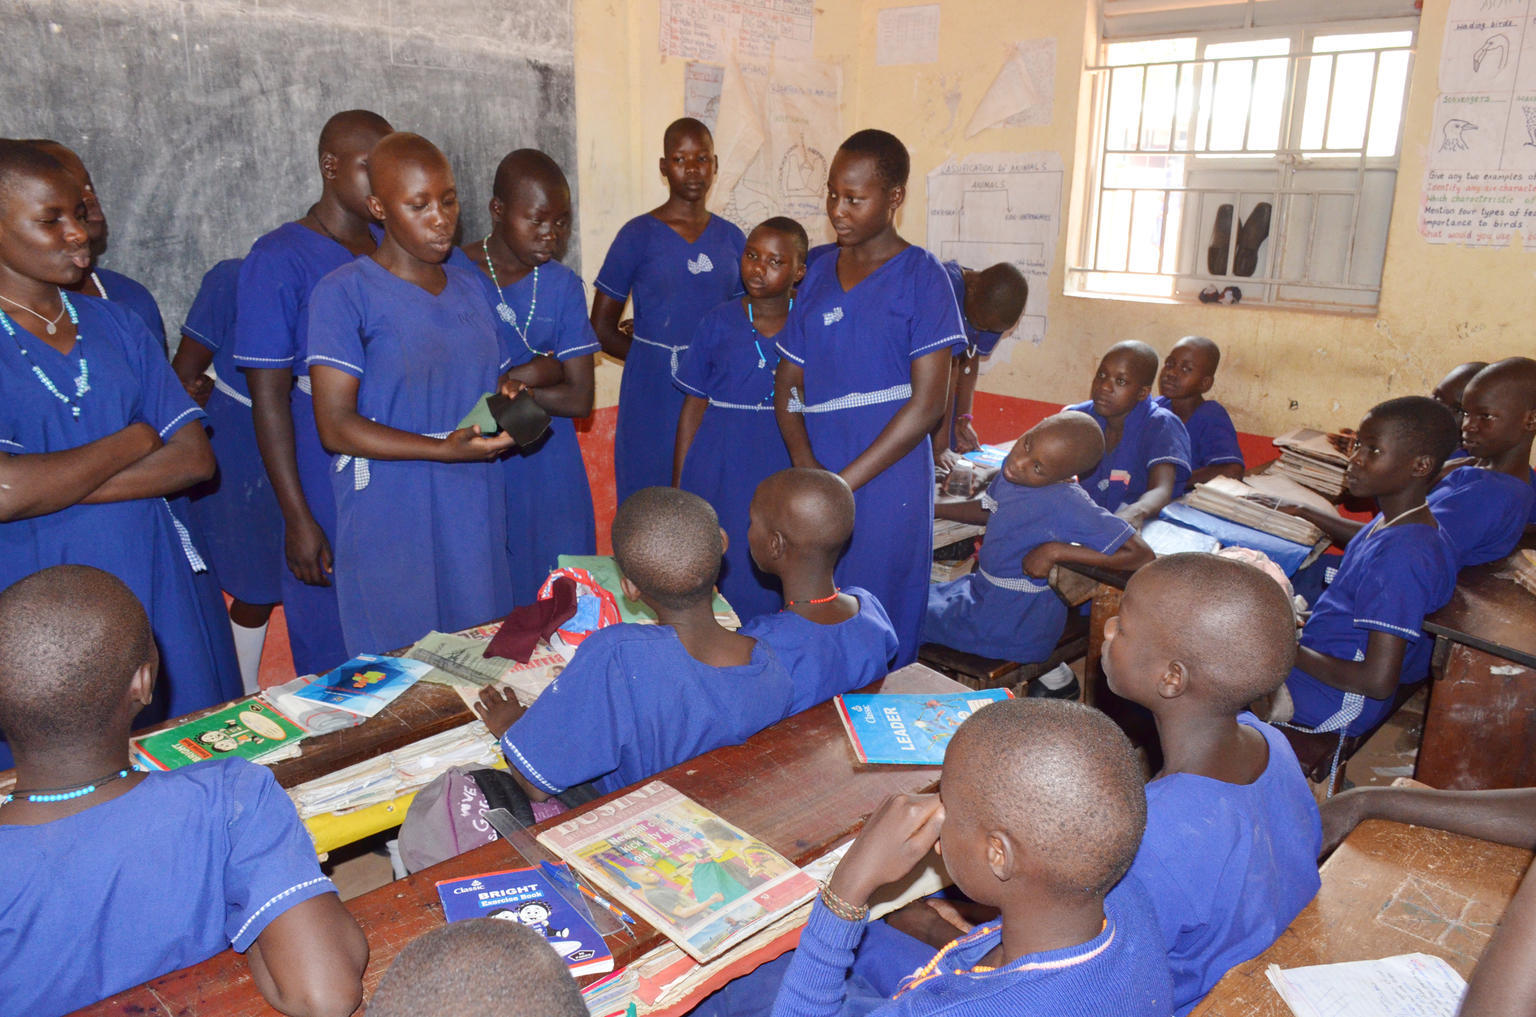 Students at Morulem Girls Primary School in Abim District, in Northern Uganda, teach younger students about menstrual hygiene management. © UNICEF/UNI210169/Adriko